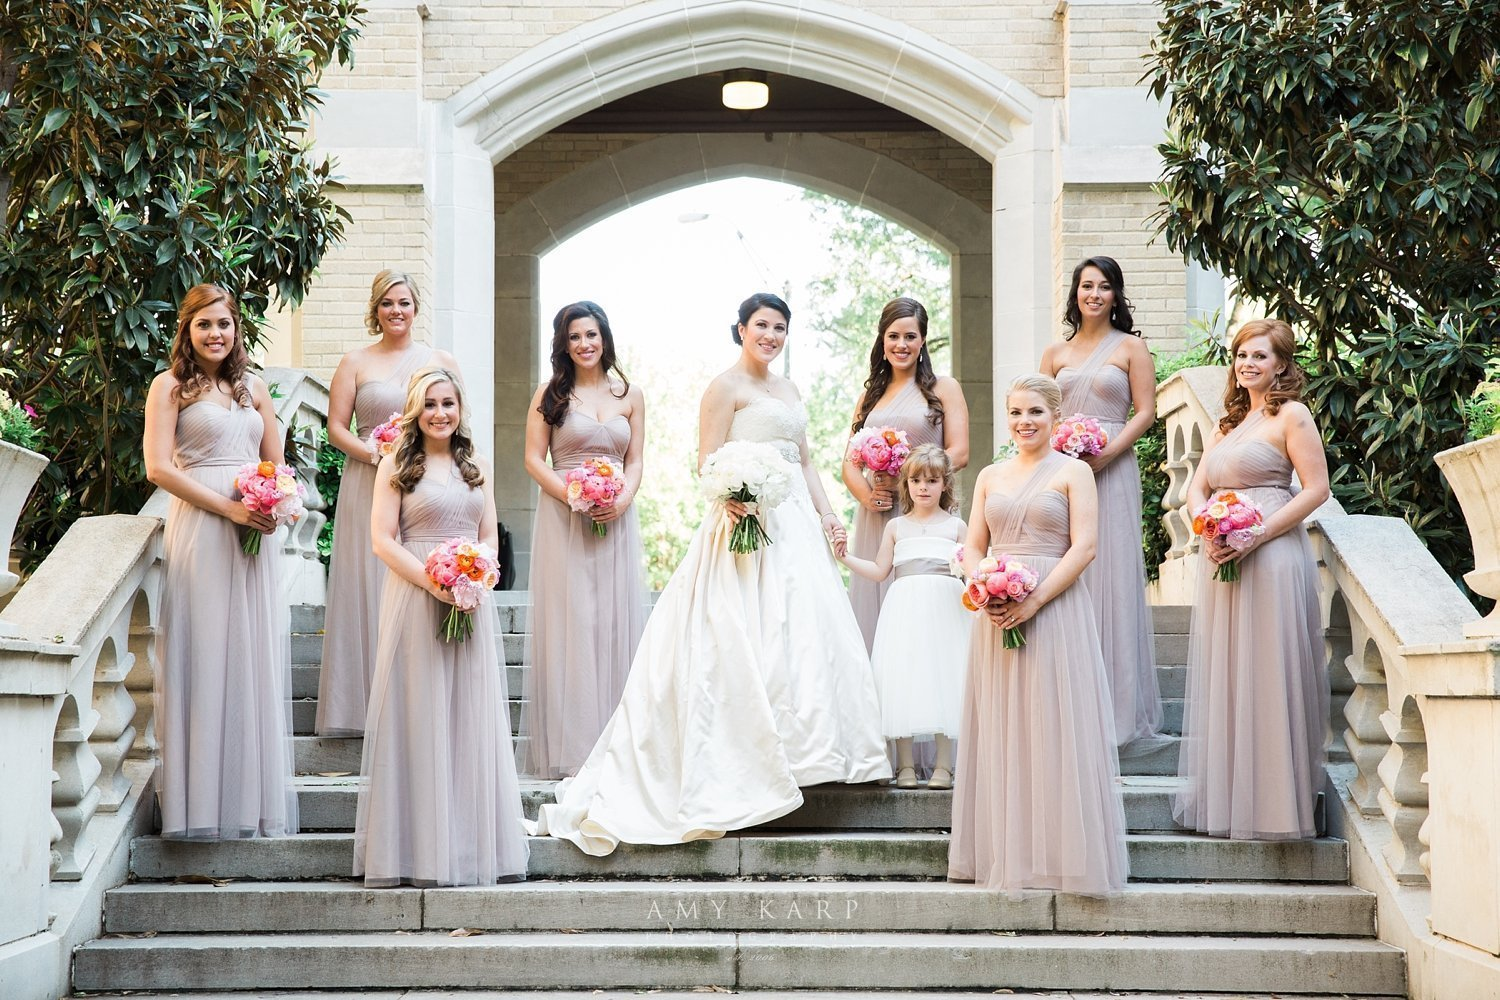 dallas-wedding-dcc-highland-park-hpumc-amanda-jm-13